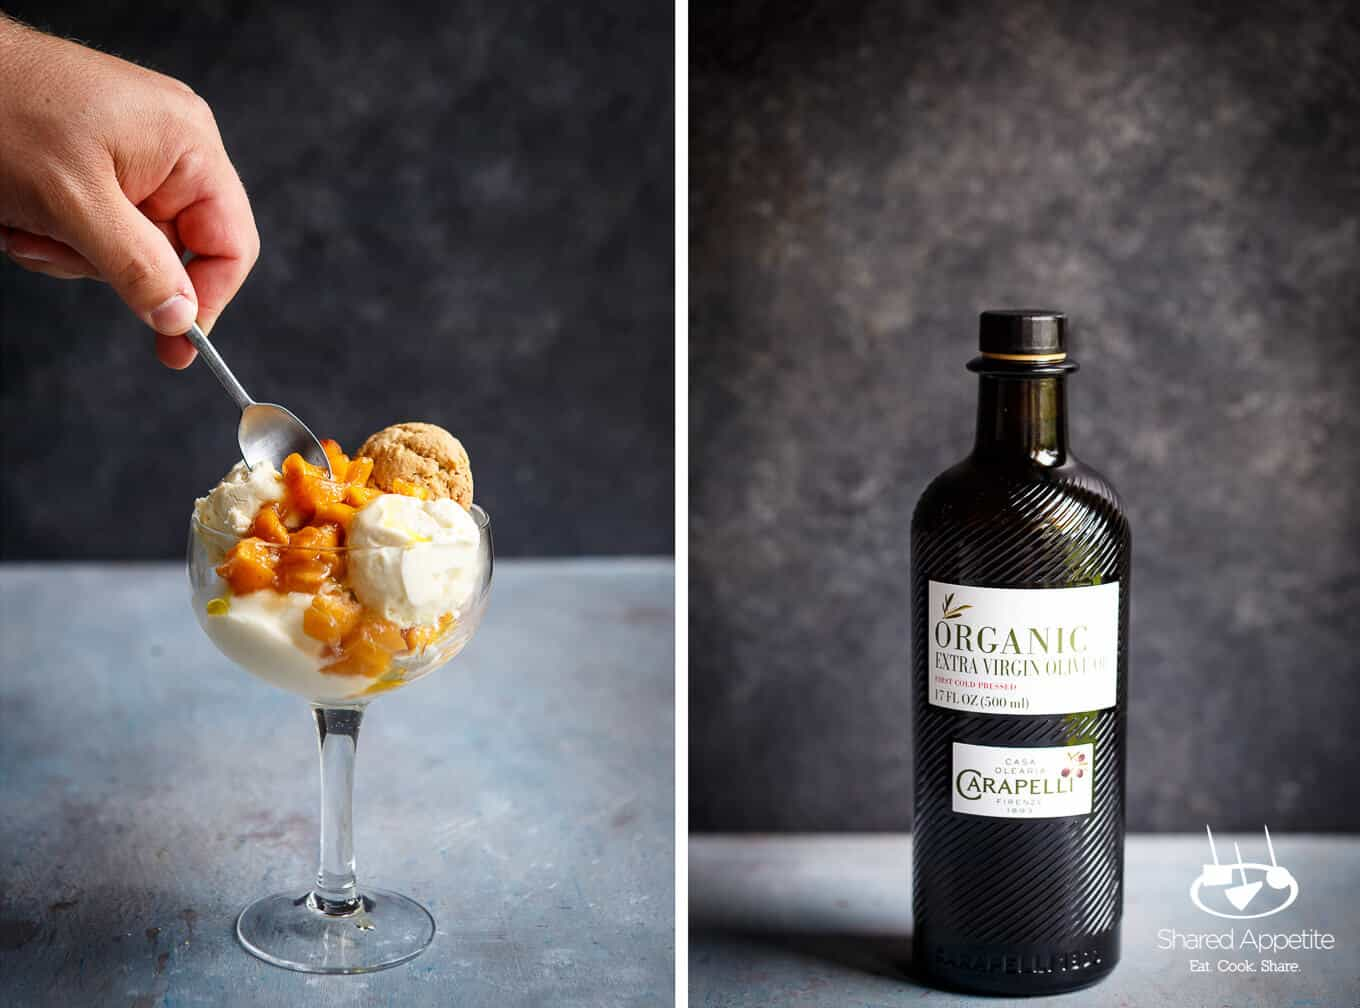 Churn Olive Oil Ice Cream with Brown Sugar Roasted Peaches with Olive Oil Cookie along with a bottle of Carapelli Organic Extra Virgin Olive Oil | sharedappetite.com